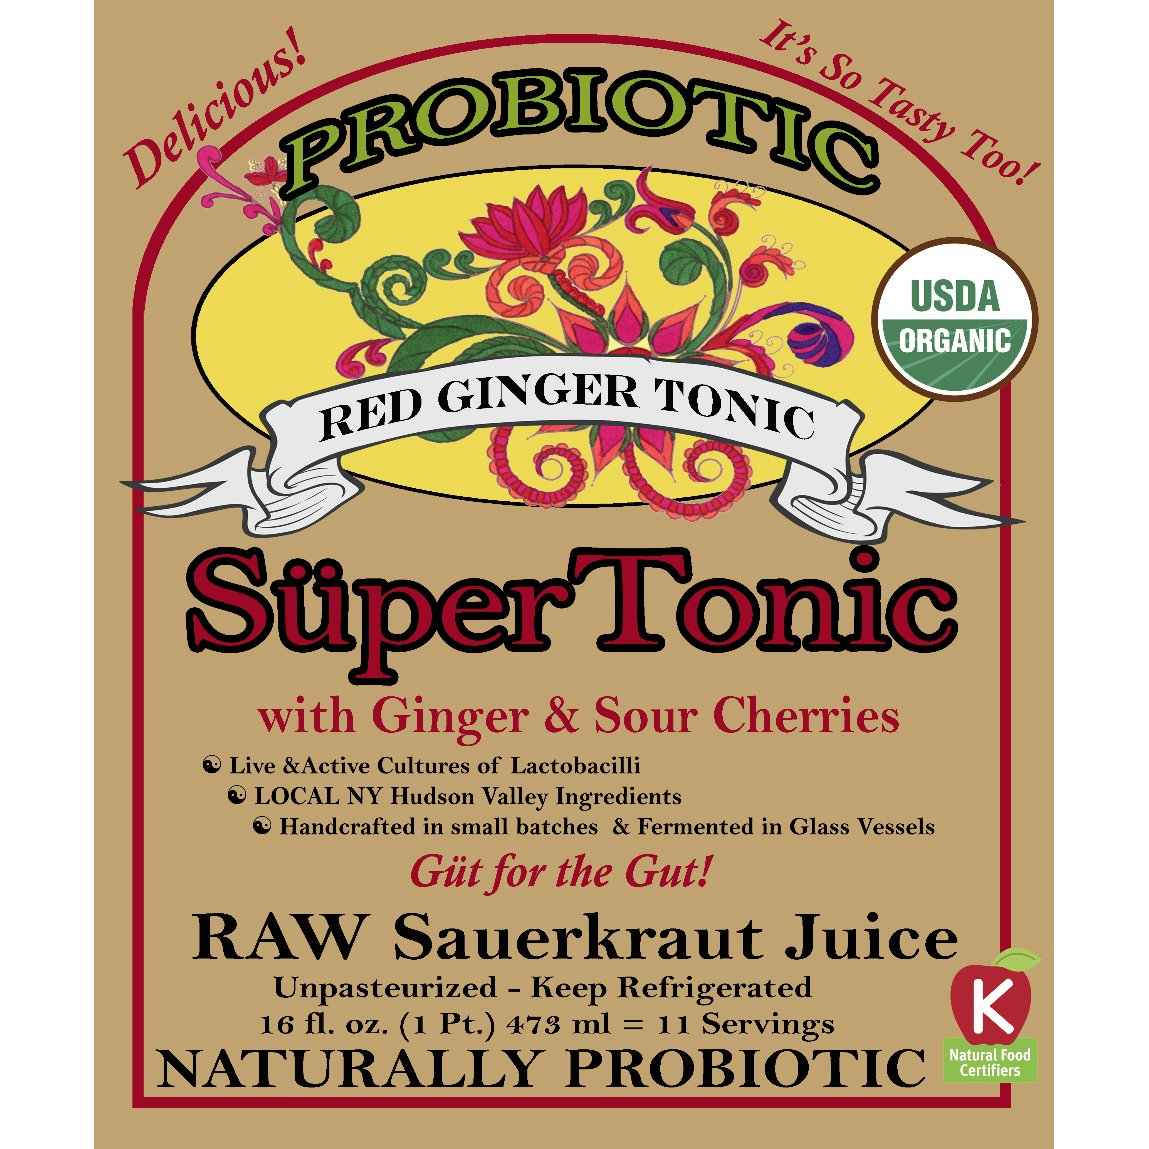 Red Ginger SuperTonic: organic, naturally probiotic. 11 servings per bottle. No shipping charges with minimum. Pure juice of our raw fermented sauerkraut, unpasteurized, kosher, vegan, gluten free